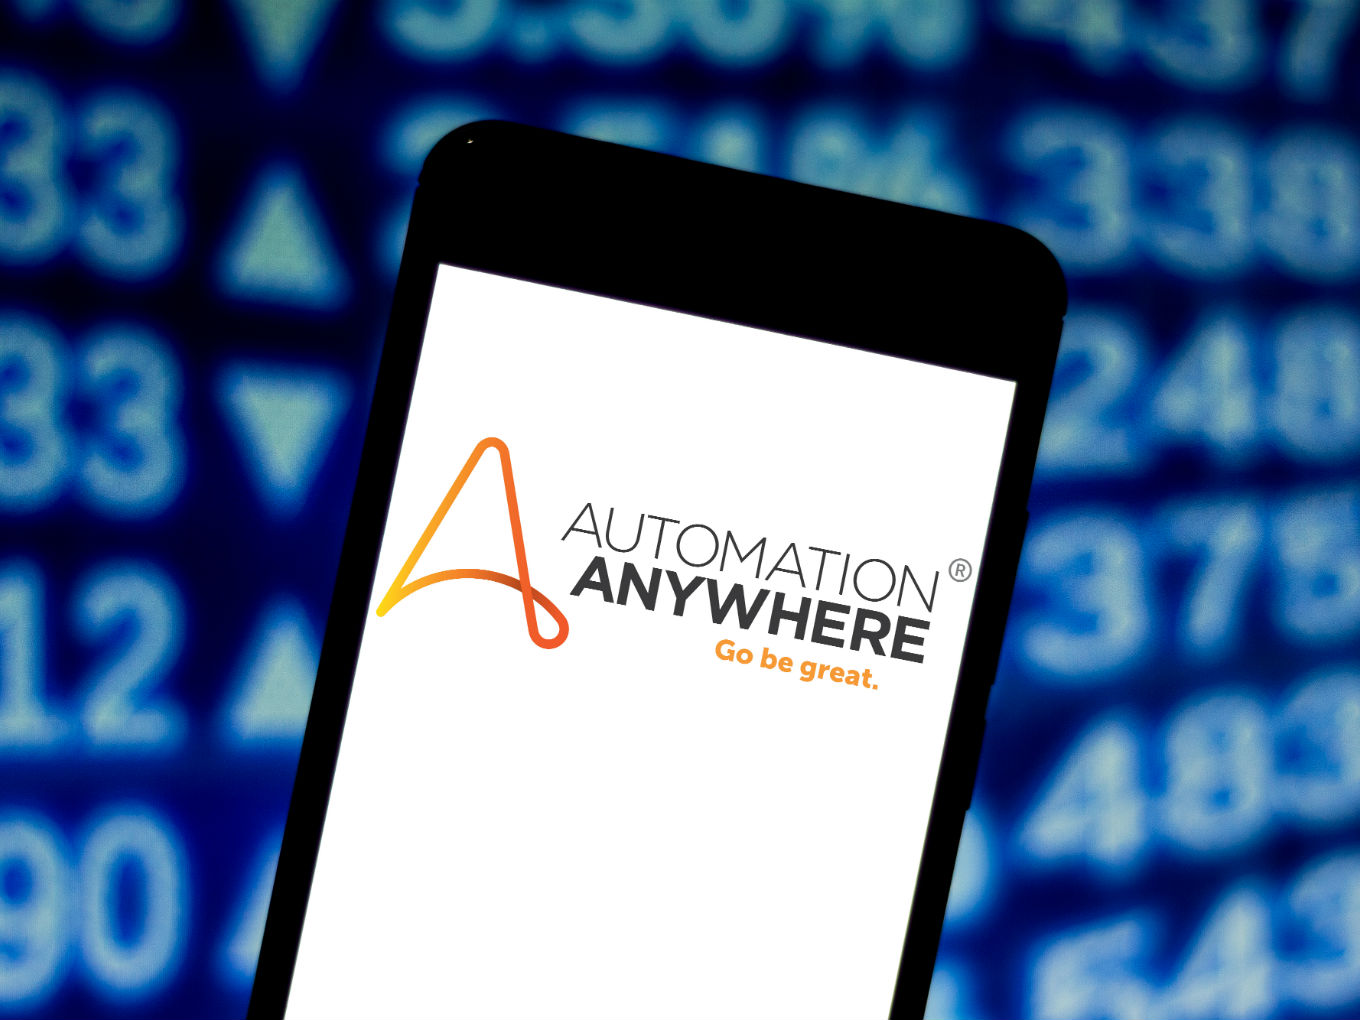 Automation Anywhere Eyes Growth With $100 Mn Investment In India